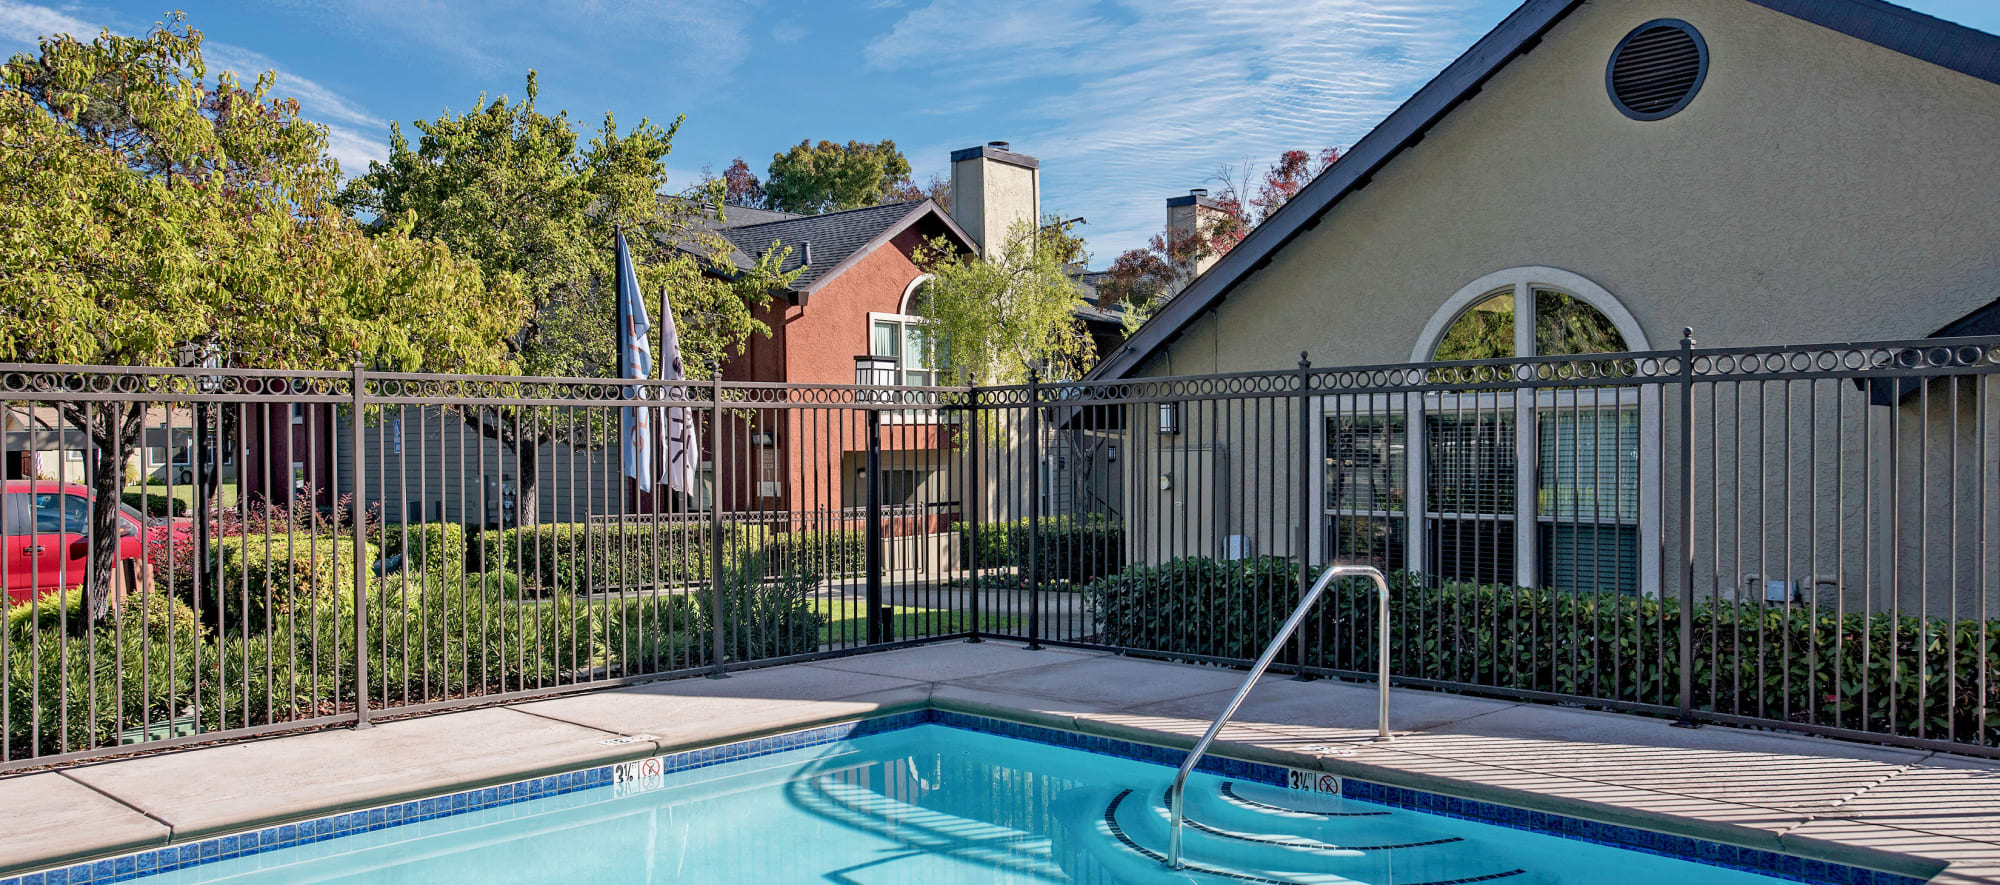 Pool and spa at Sterling Heights Apartment Homes in Benicia, California